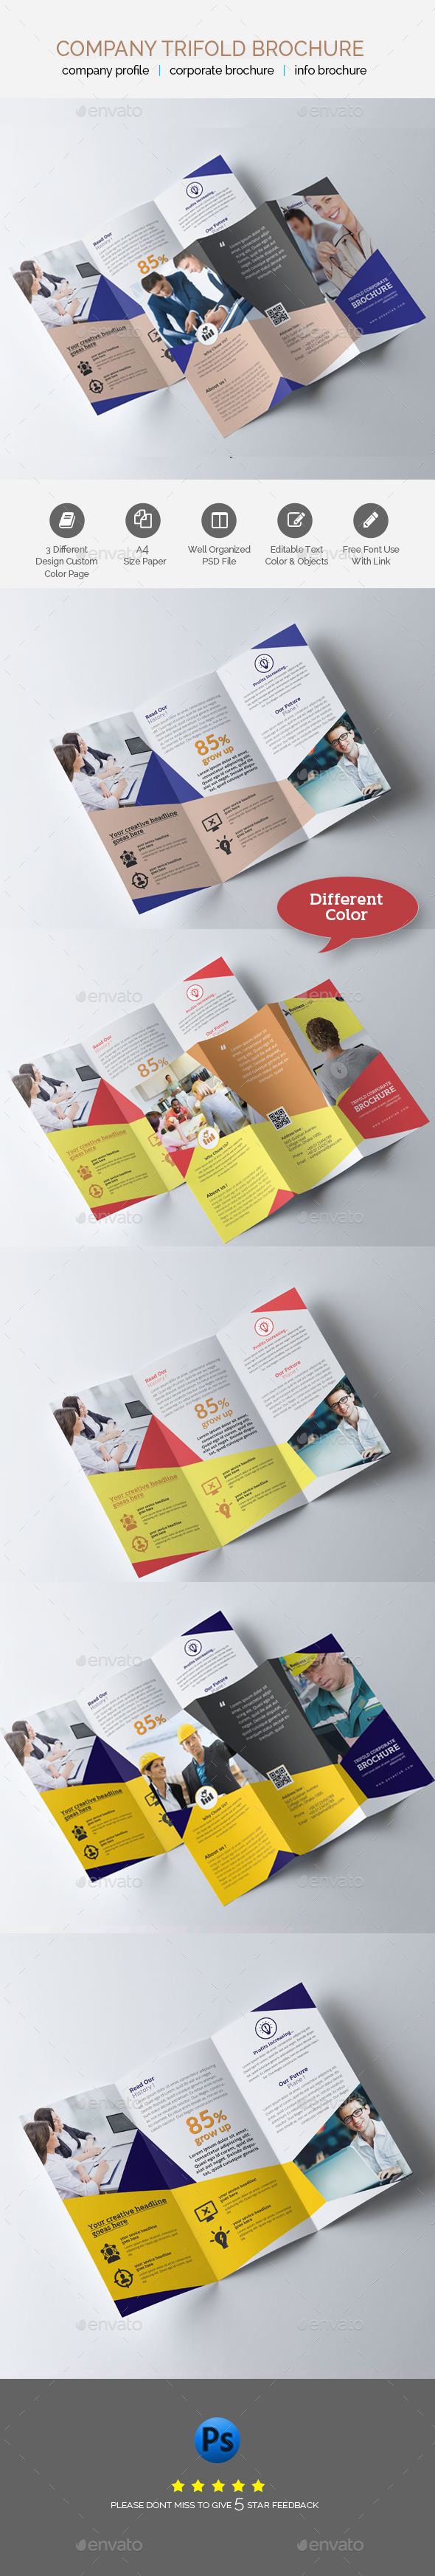 Business Trifold Brochure Template - Brochures Print Templates